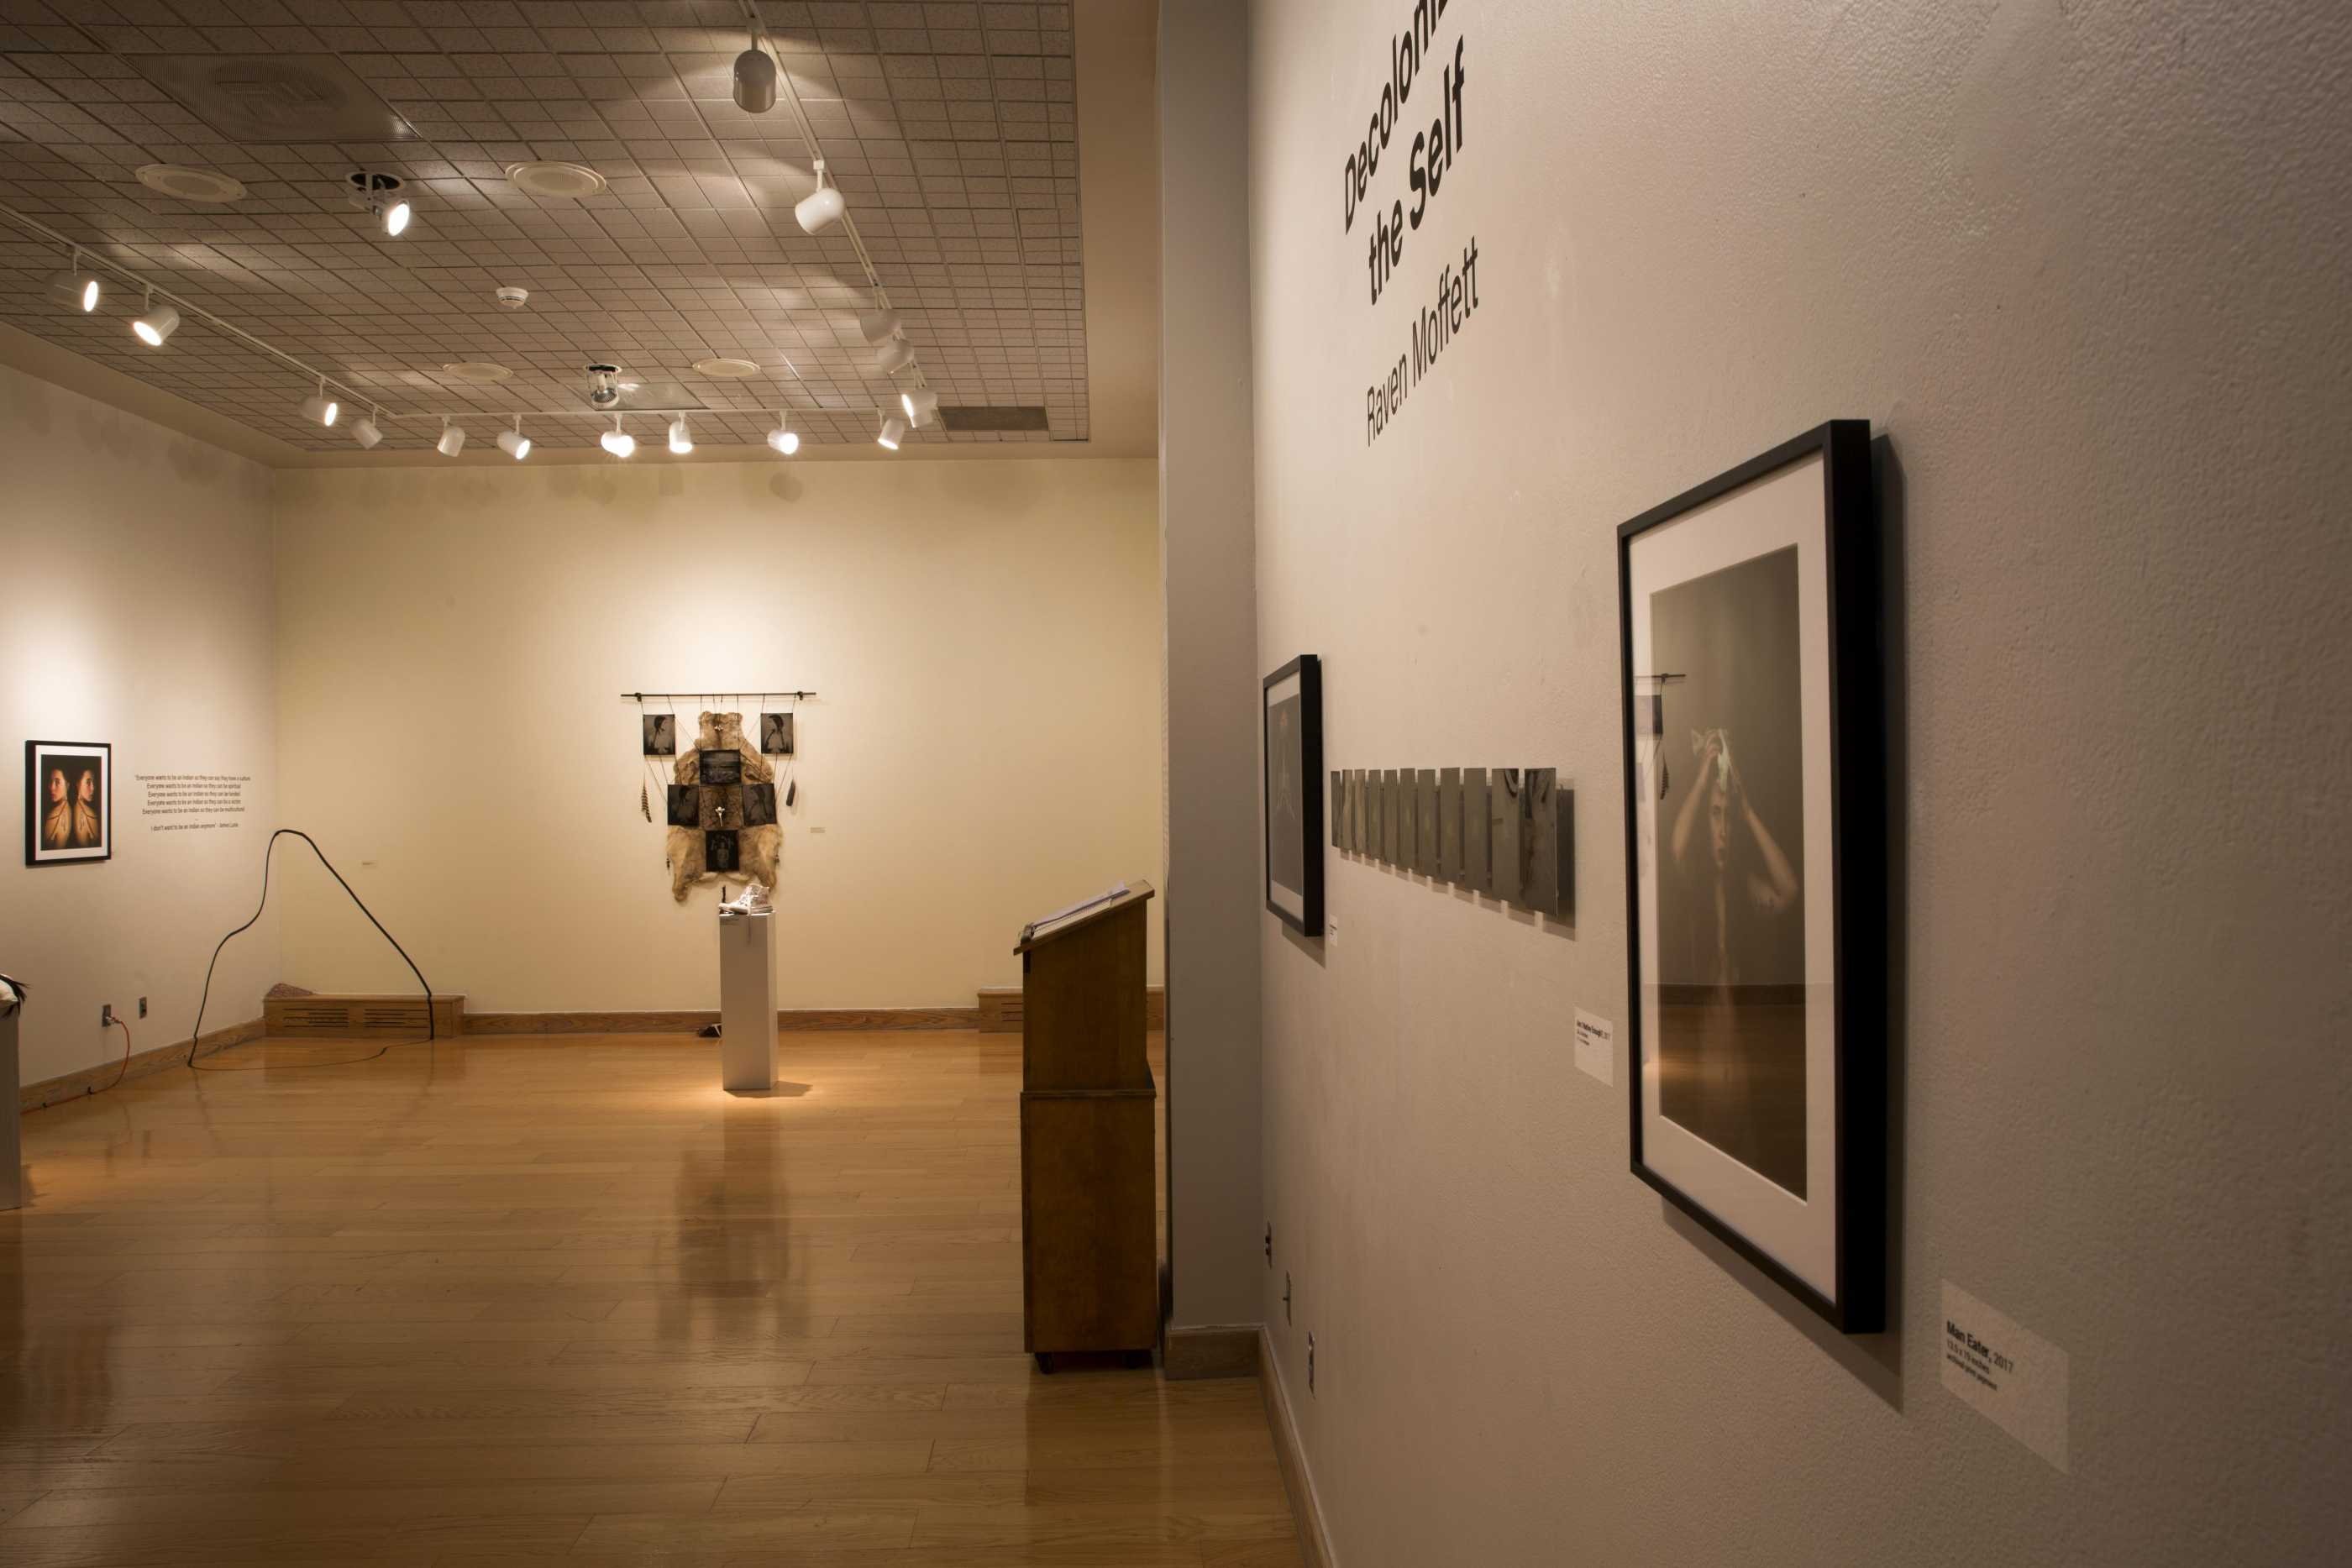 Gallery view of Raven Moffet's exhibition, Decolonizing the Self